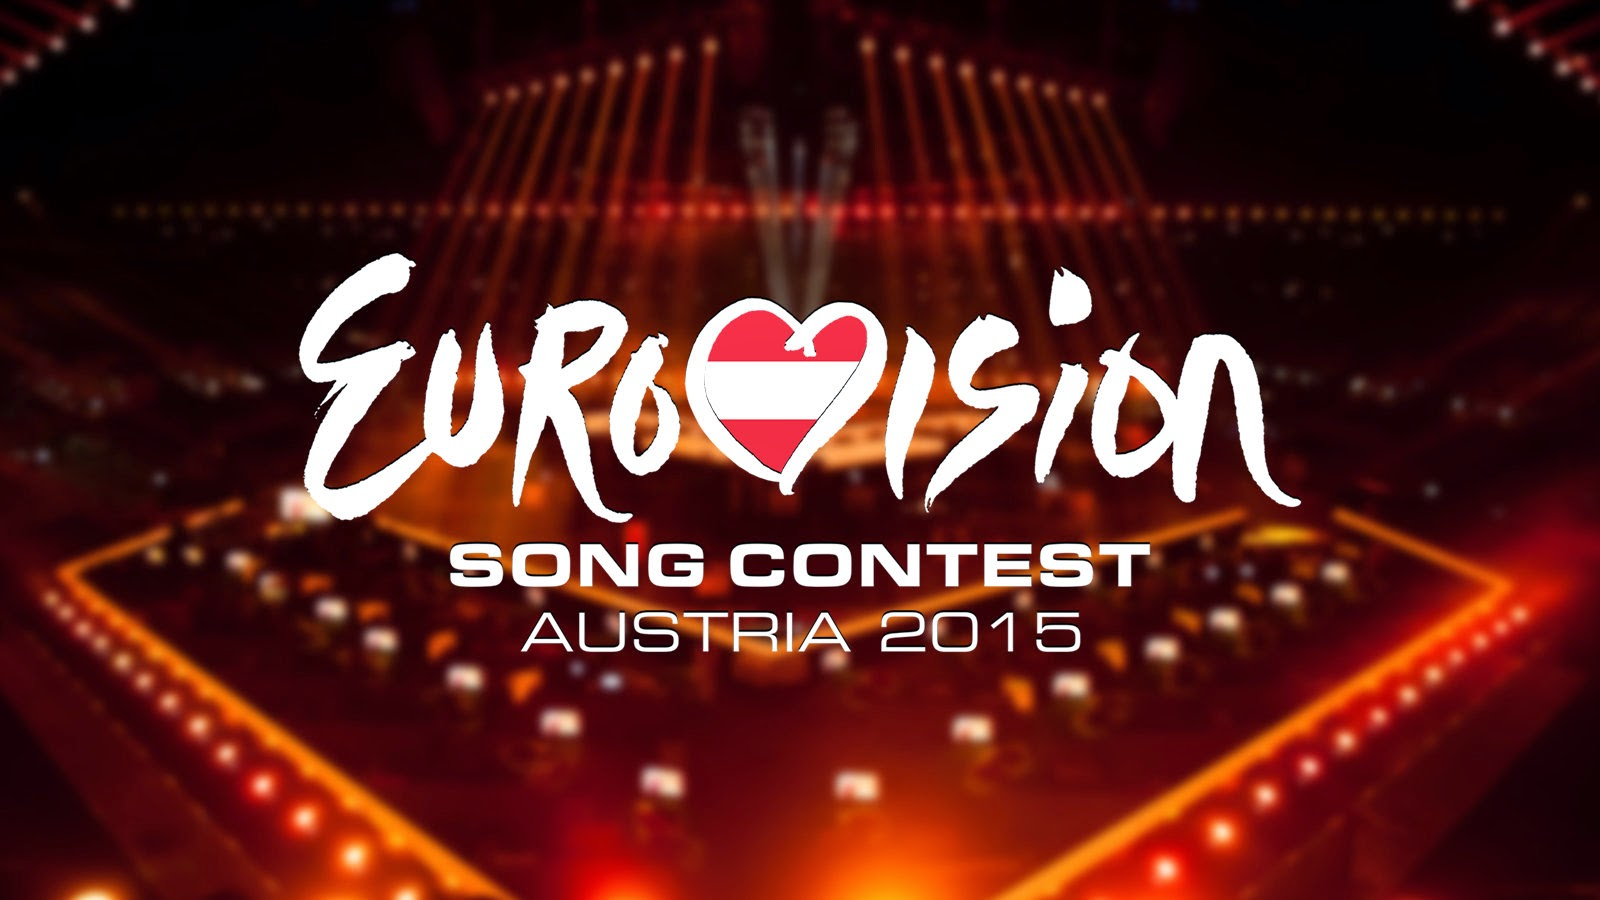 eurovision-song-contest-2015.jpg